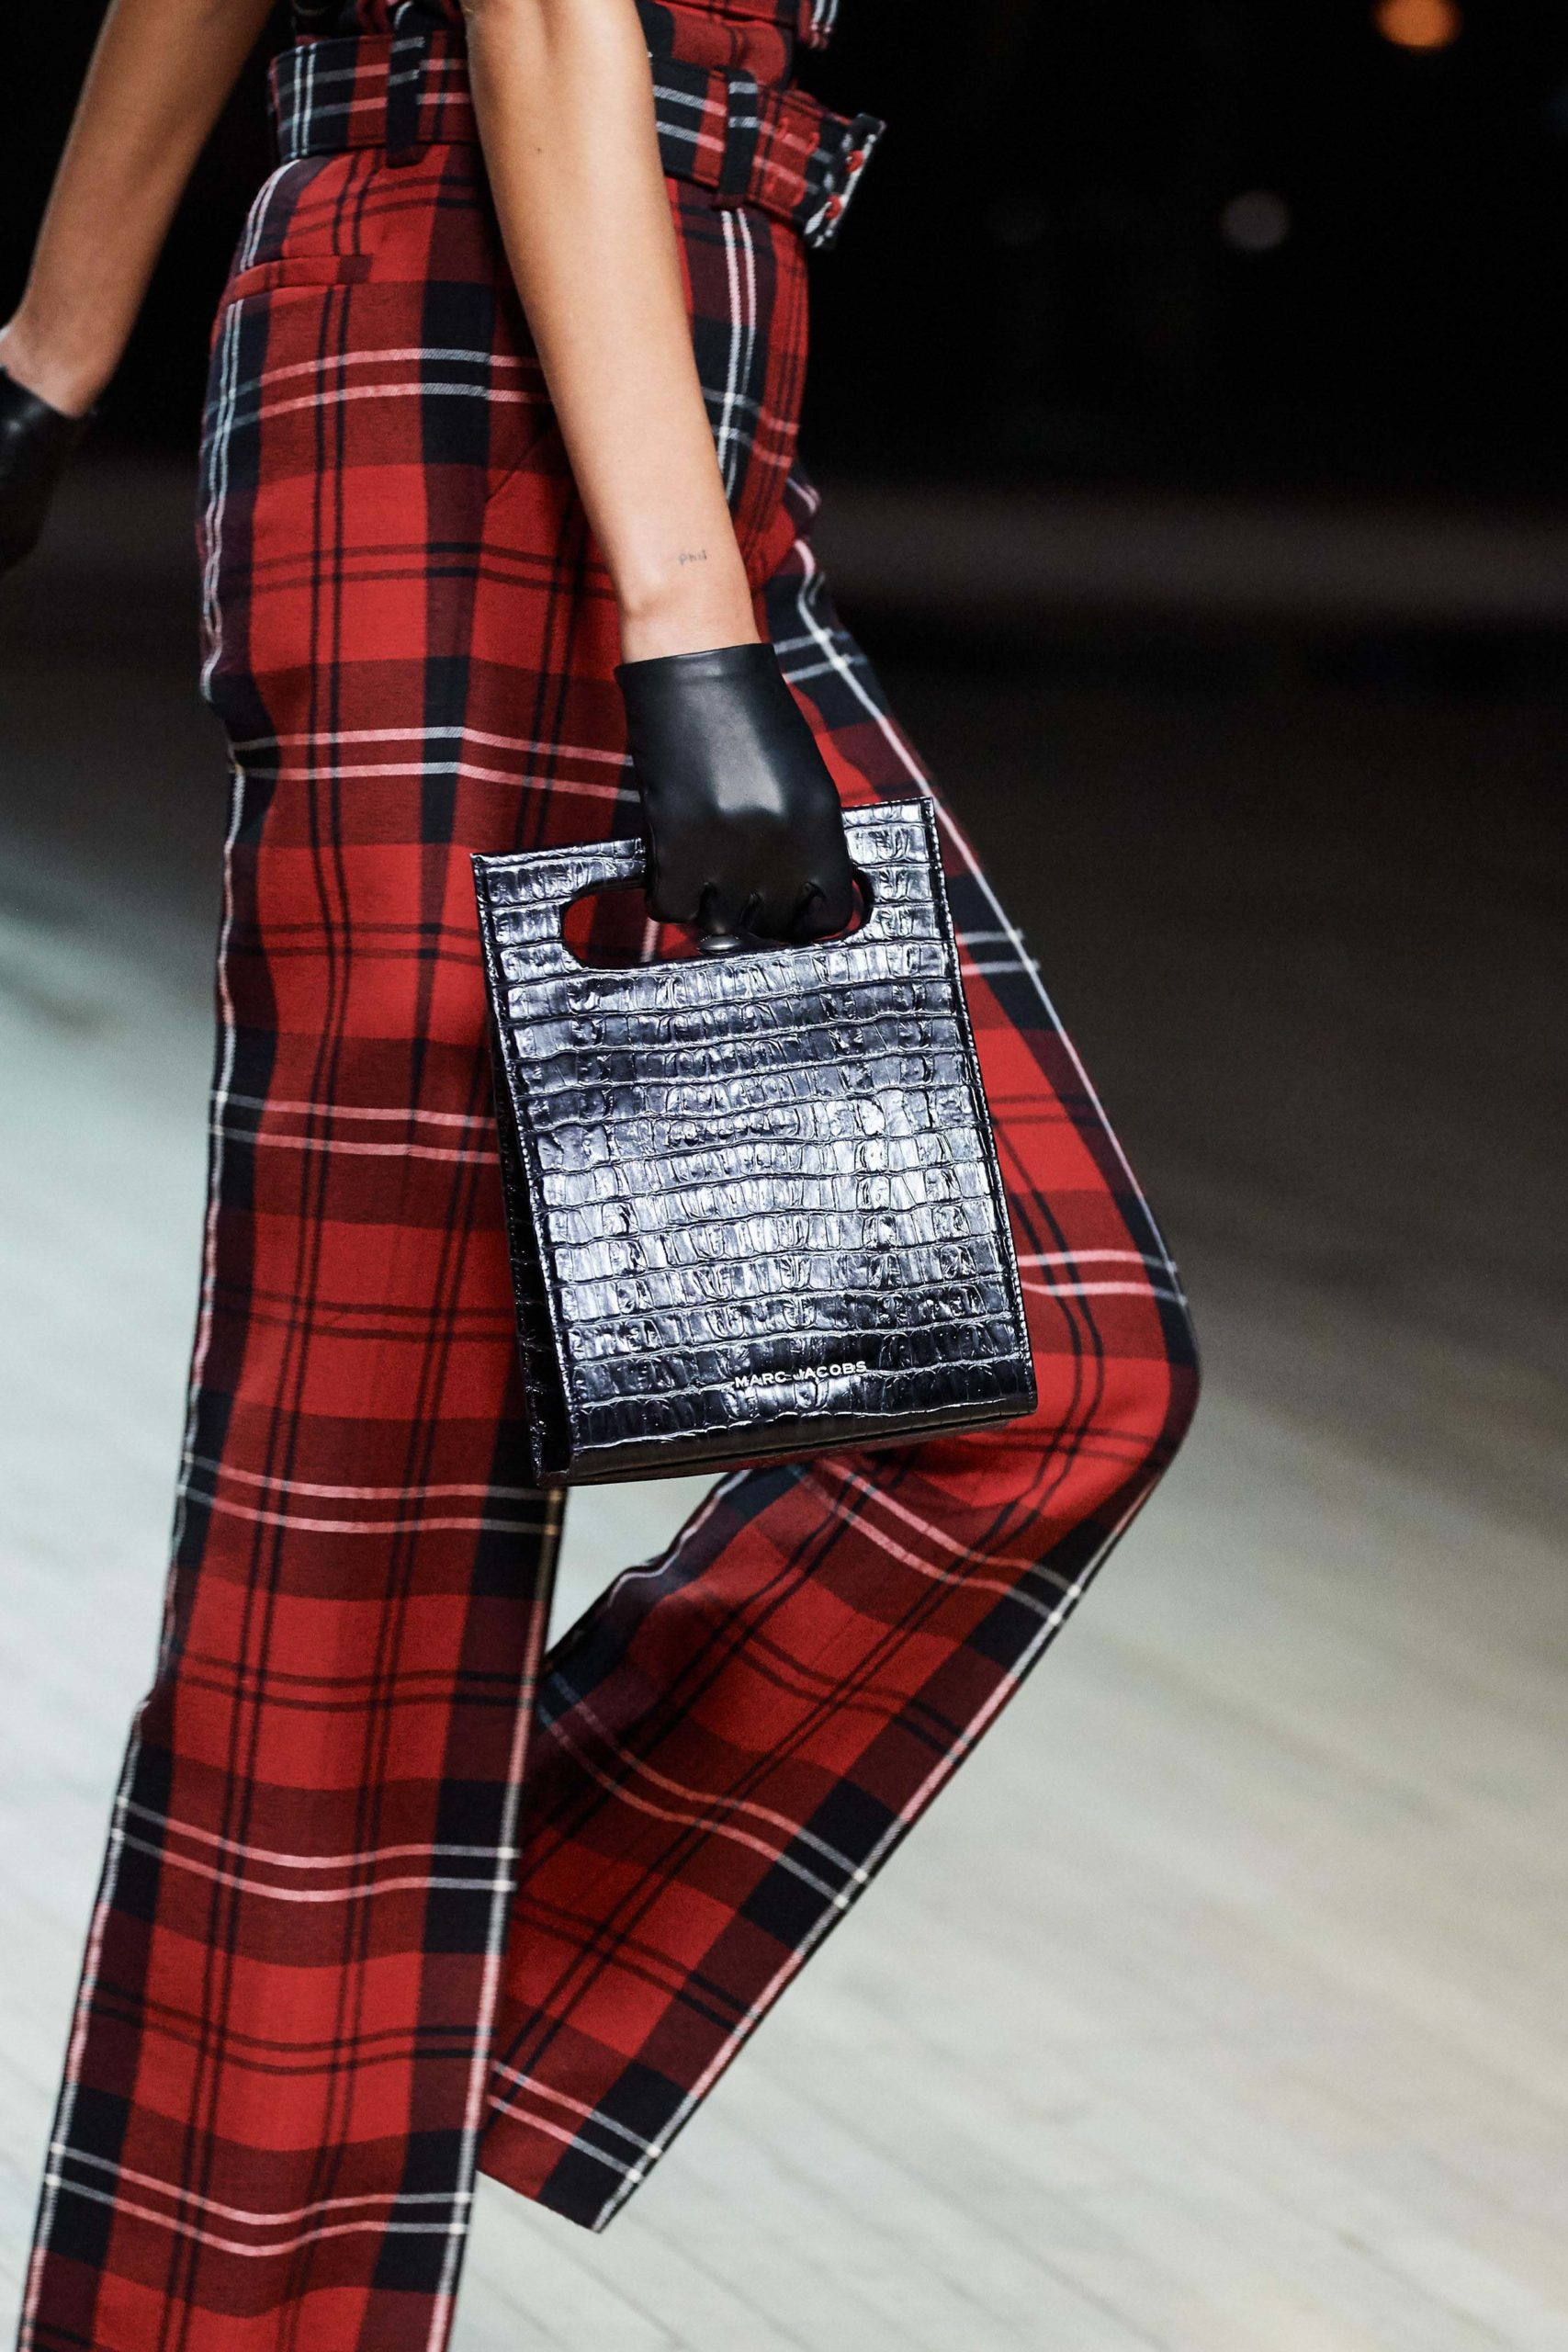 Marc Jacobs Fall 2020 trends runway coverage Ready To Wear Vogue croc bag vintage feel.